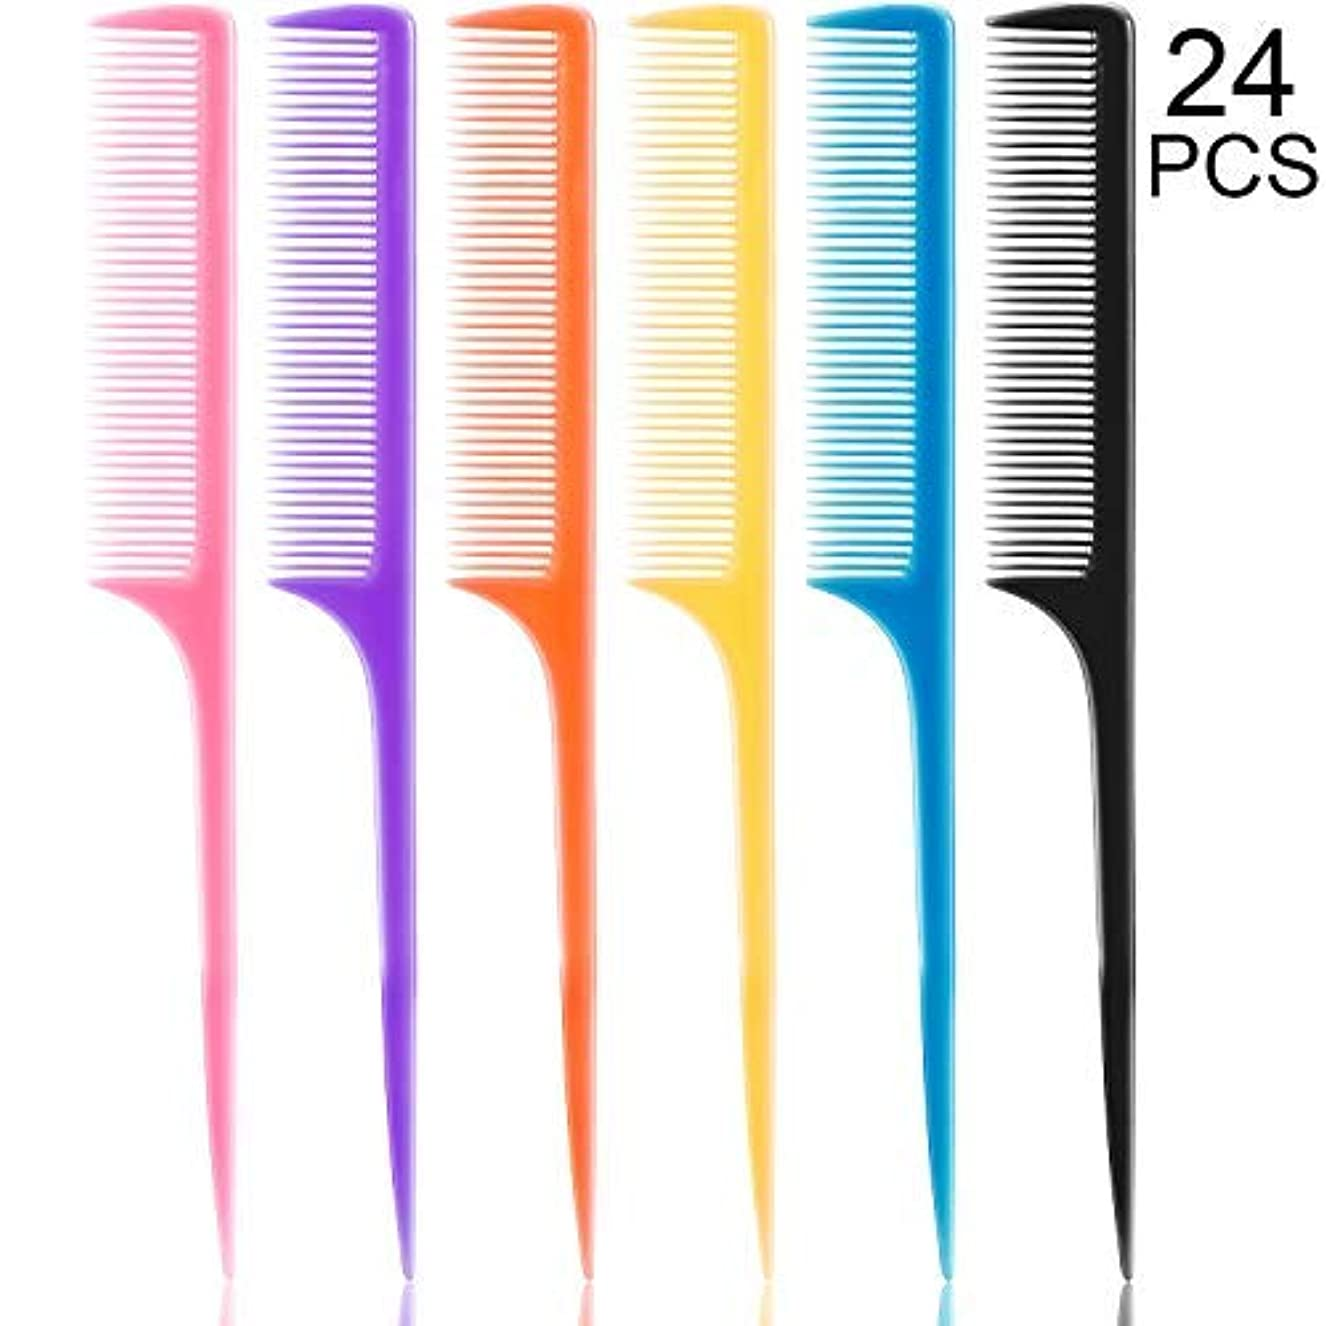 セッティング自信がある共感する24 Pieces Plastic Rat Tail Combs 8.5 Inch Fine-tooth Hair Combs Pin Tail Hair Styling Combs with Thin and Long...